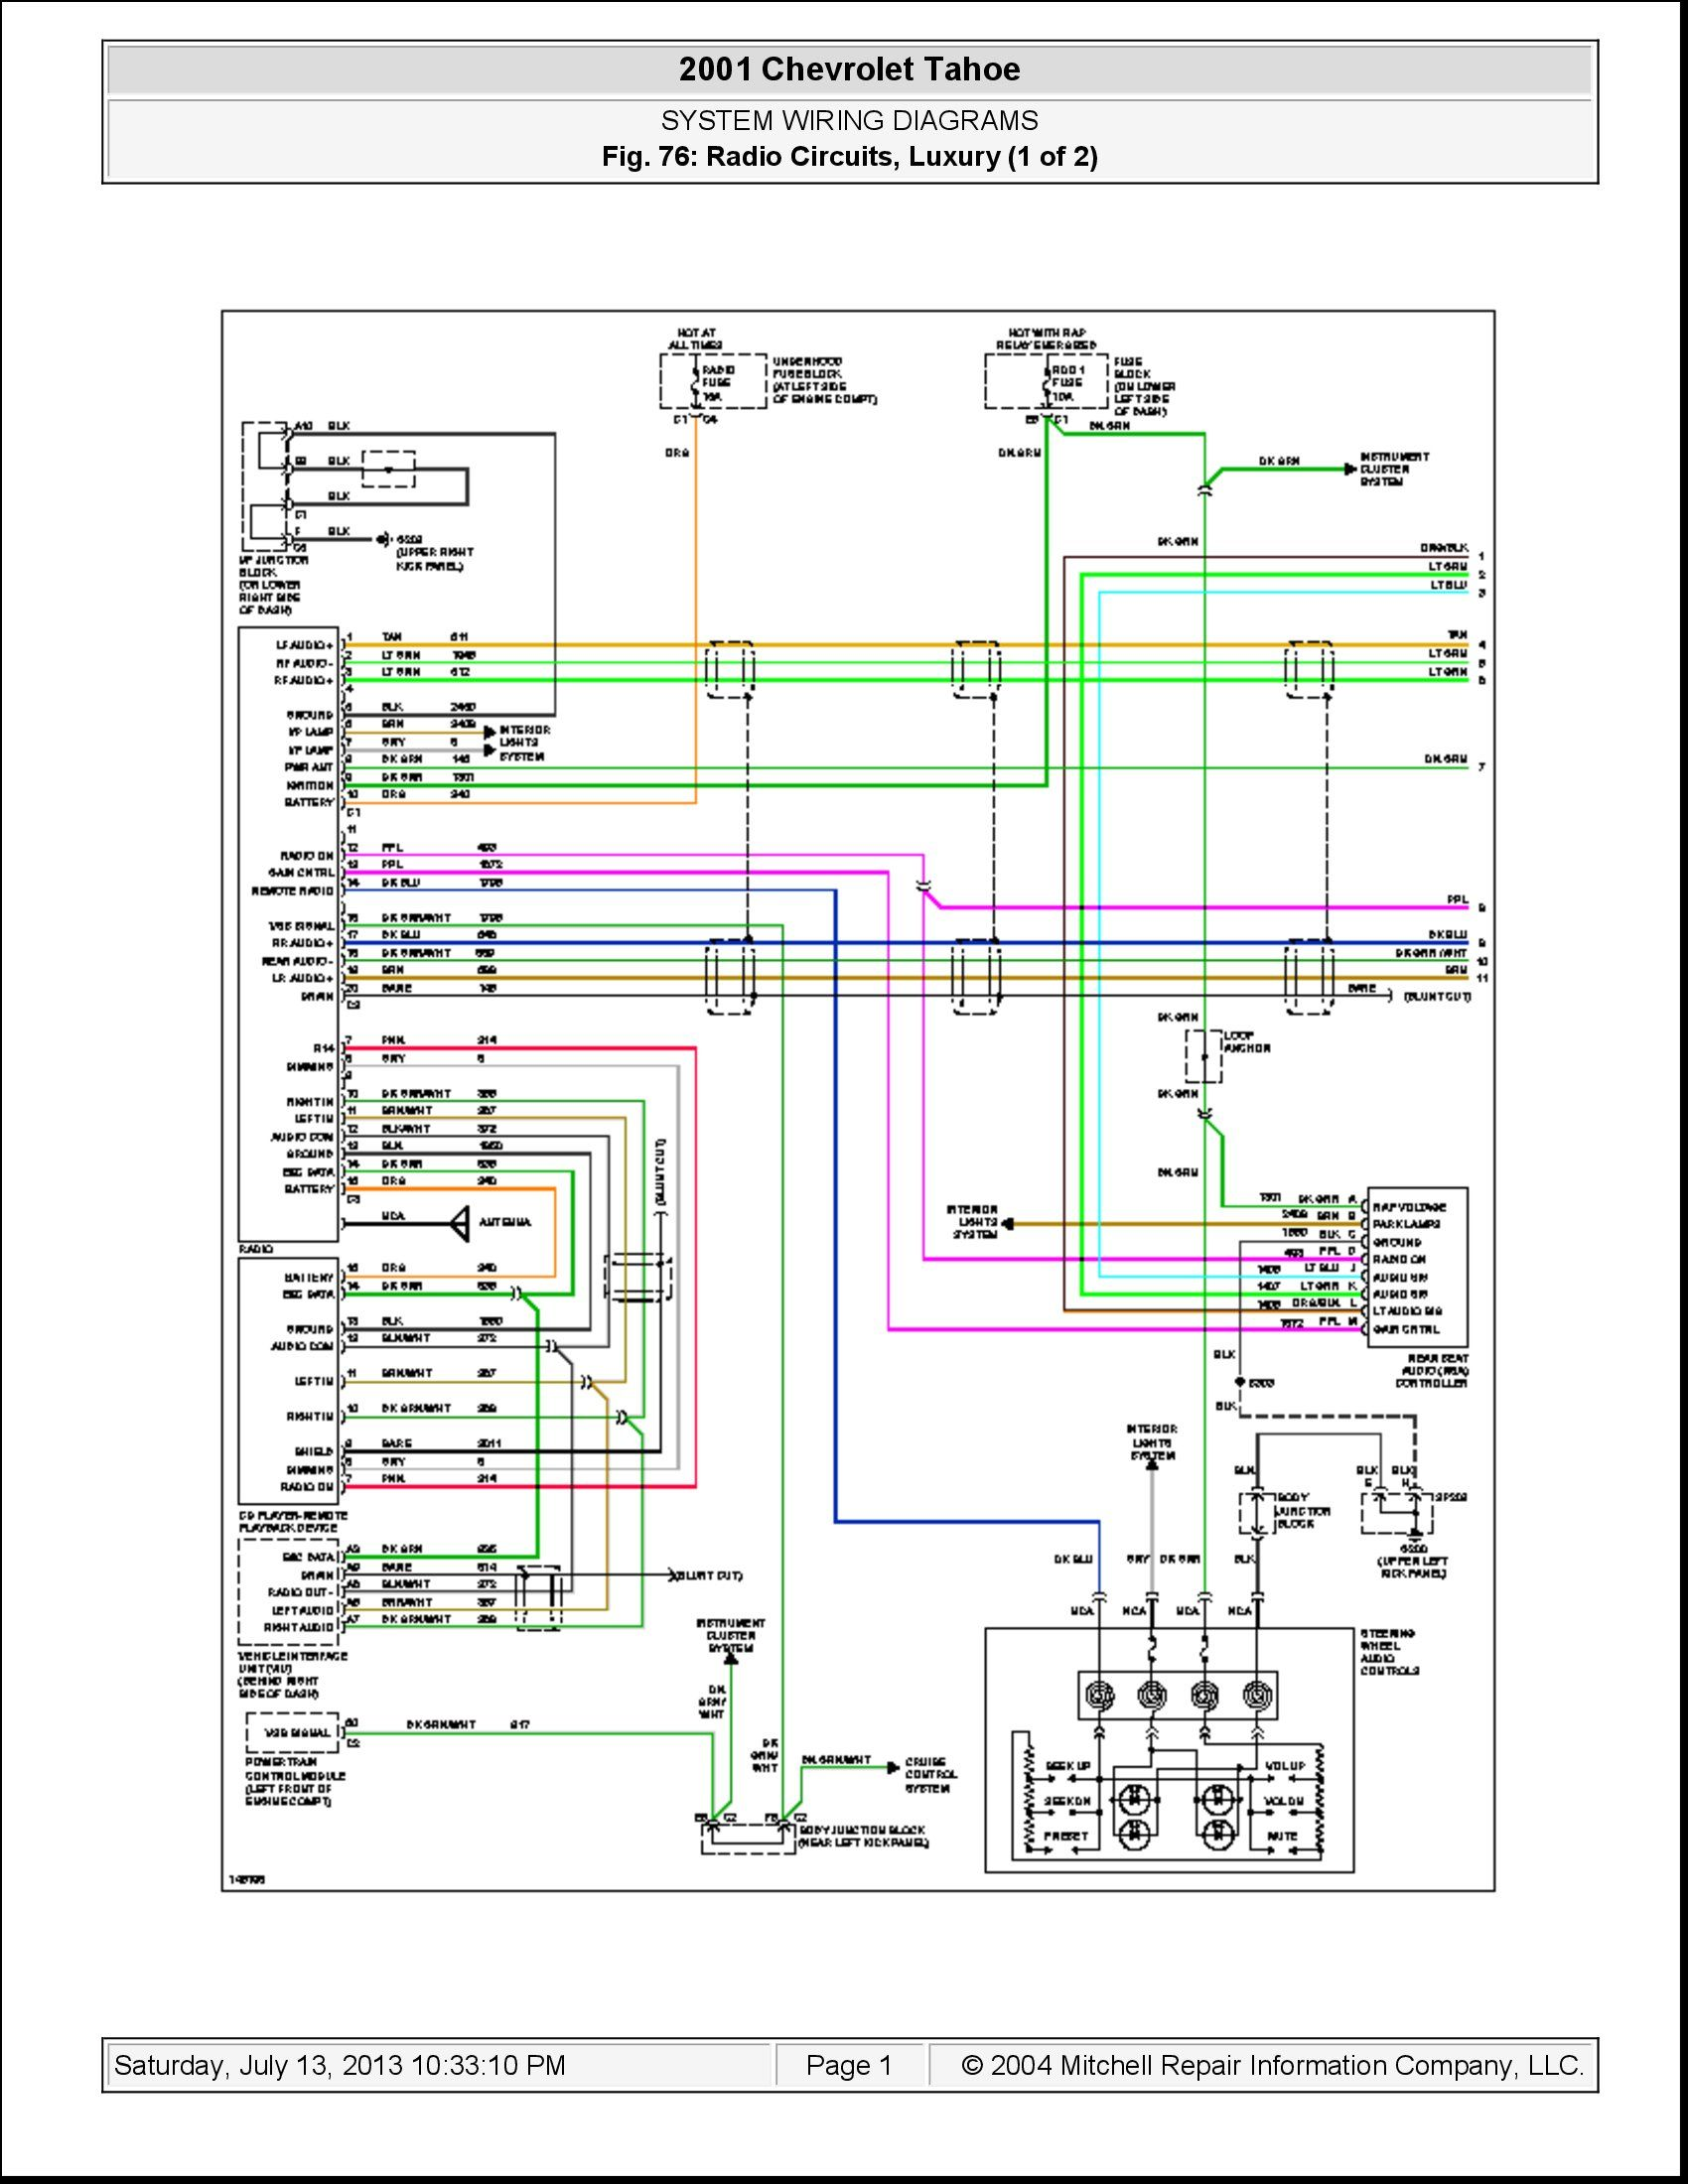 Pin On Download Wiring Diagram